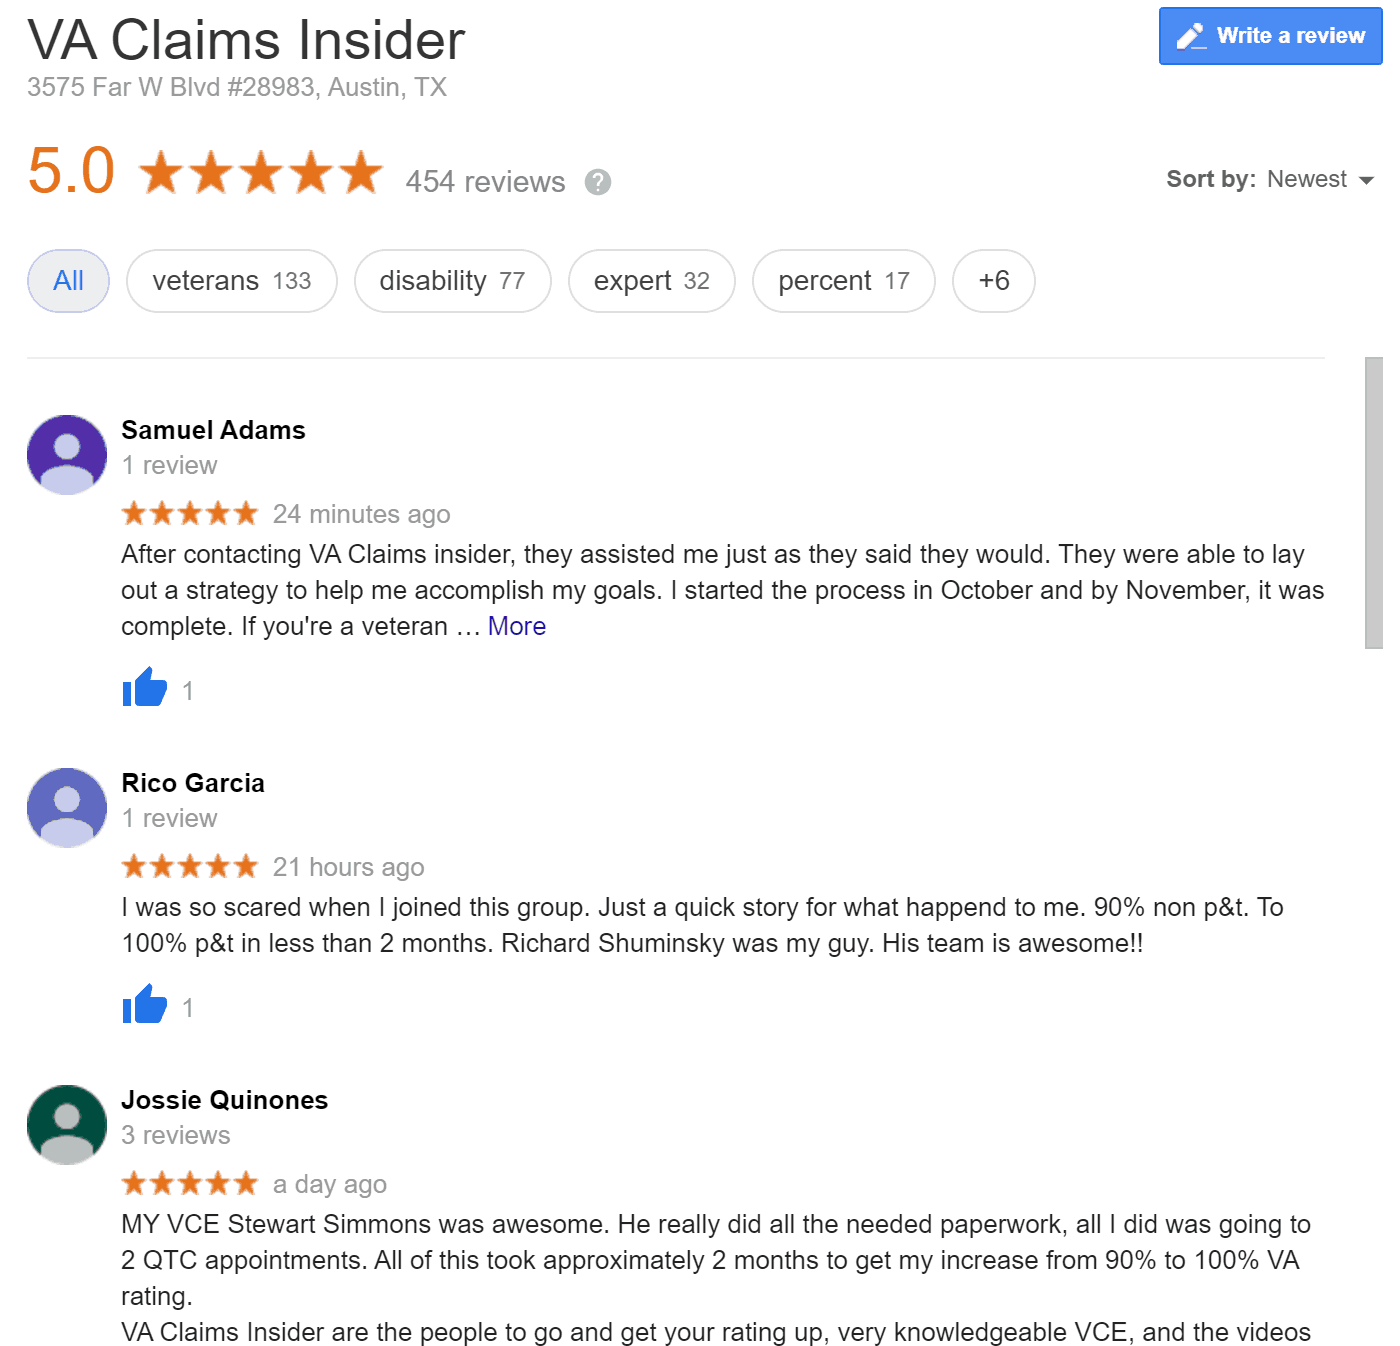 VA Claims Insider Google Reviews